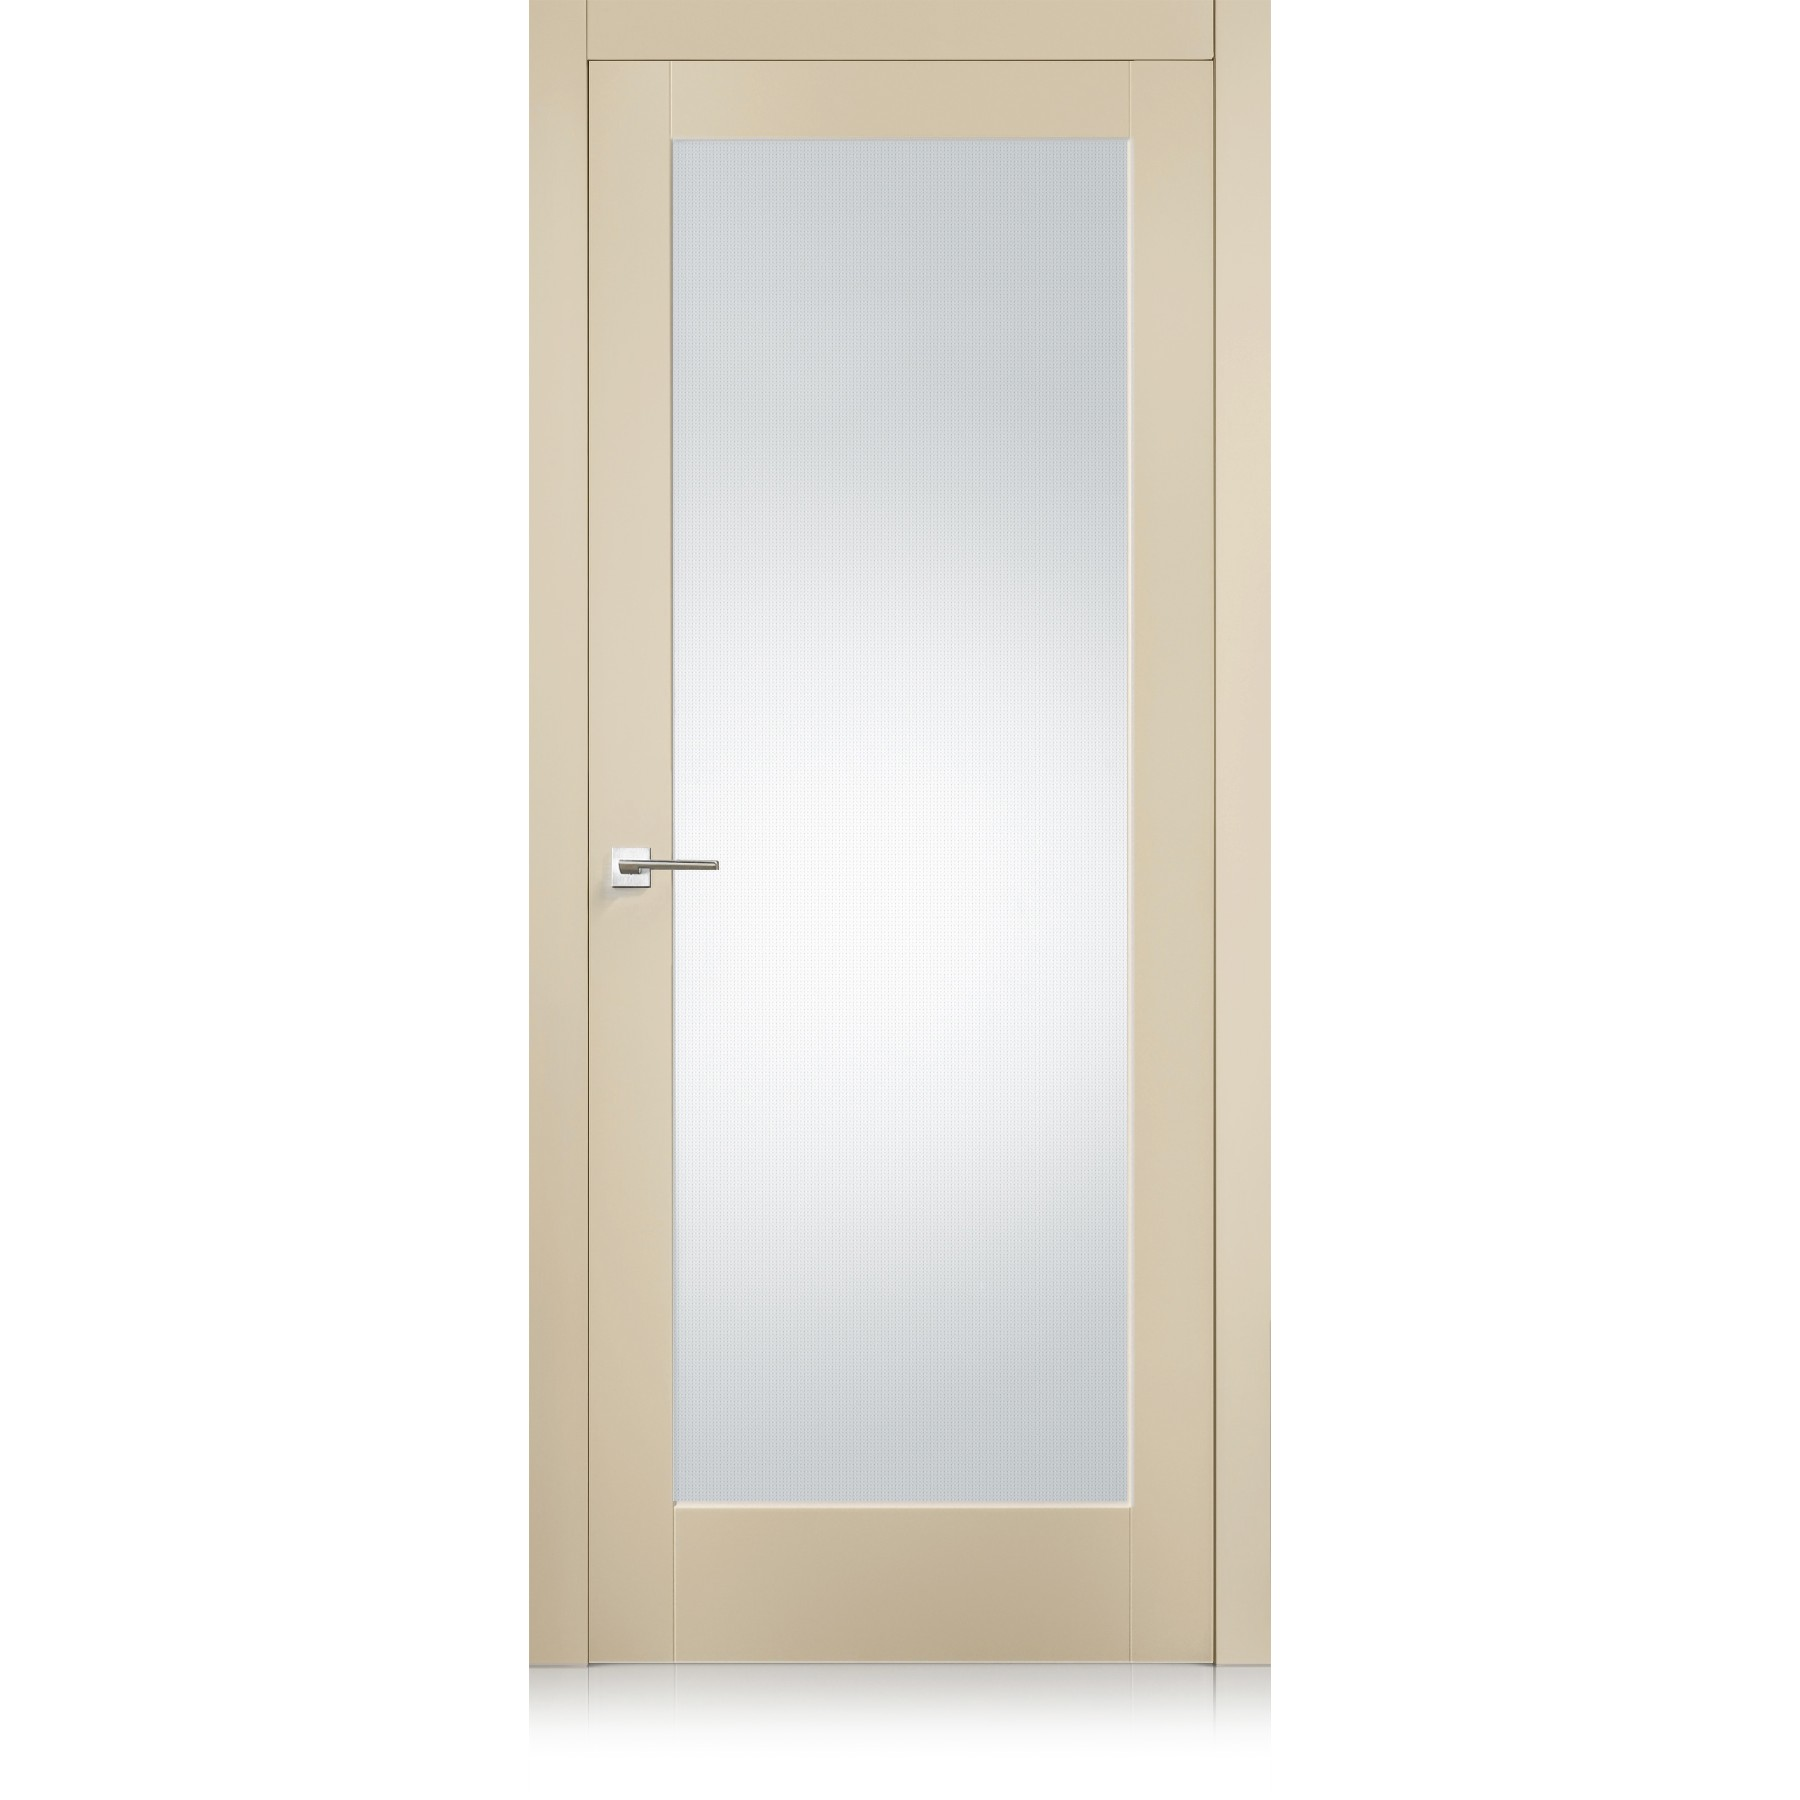 Suite / 21 cremy door